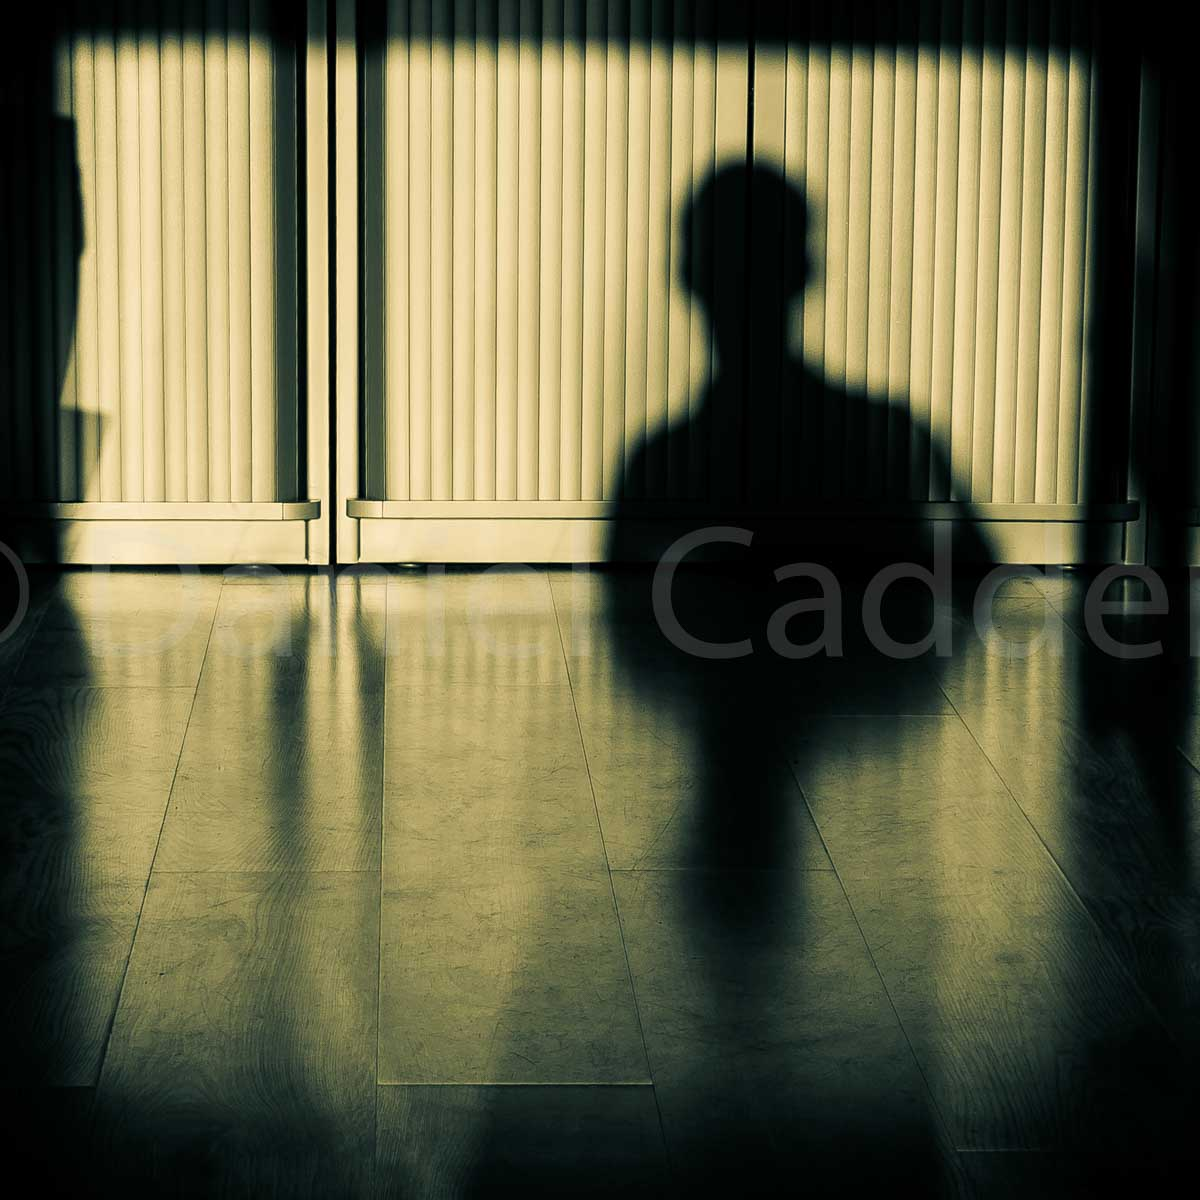 A photograph of a human shadow